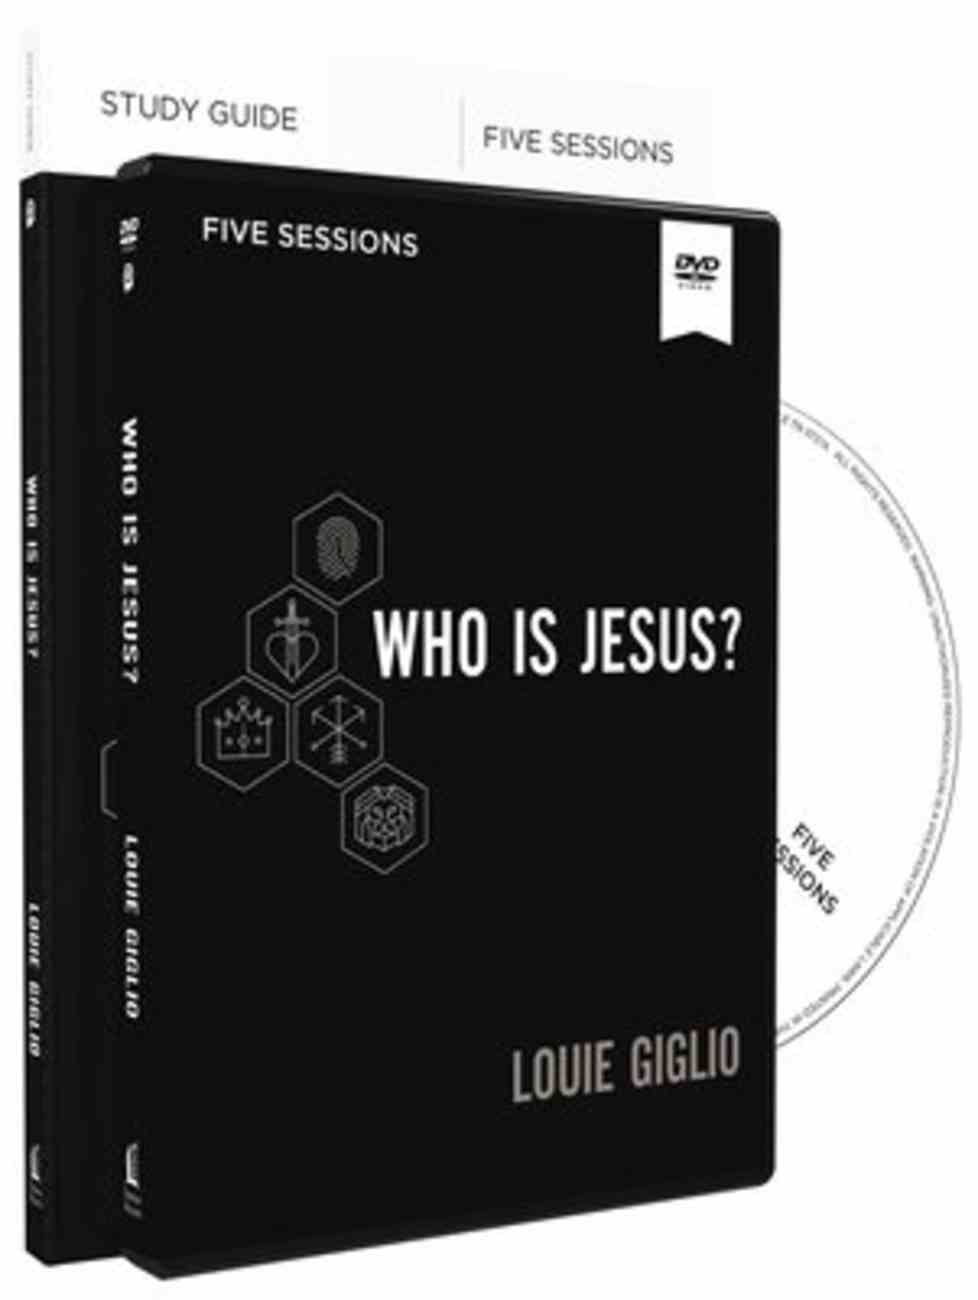 Who is Jesus? (Study Guide And Dvd) Pack